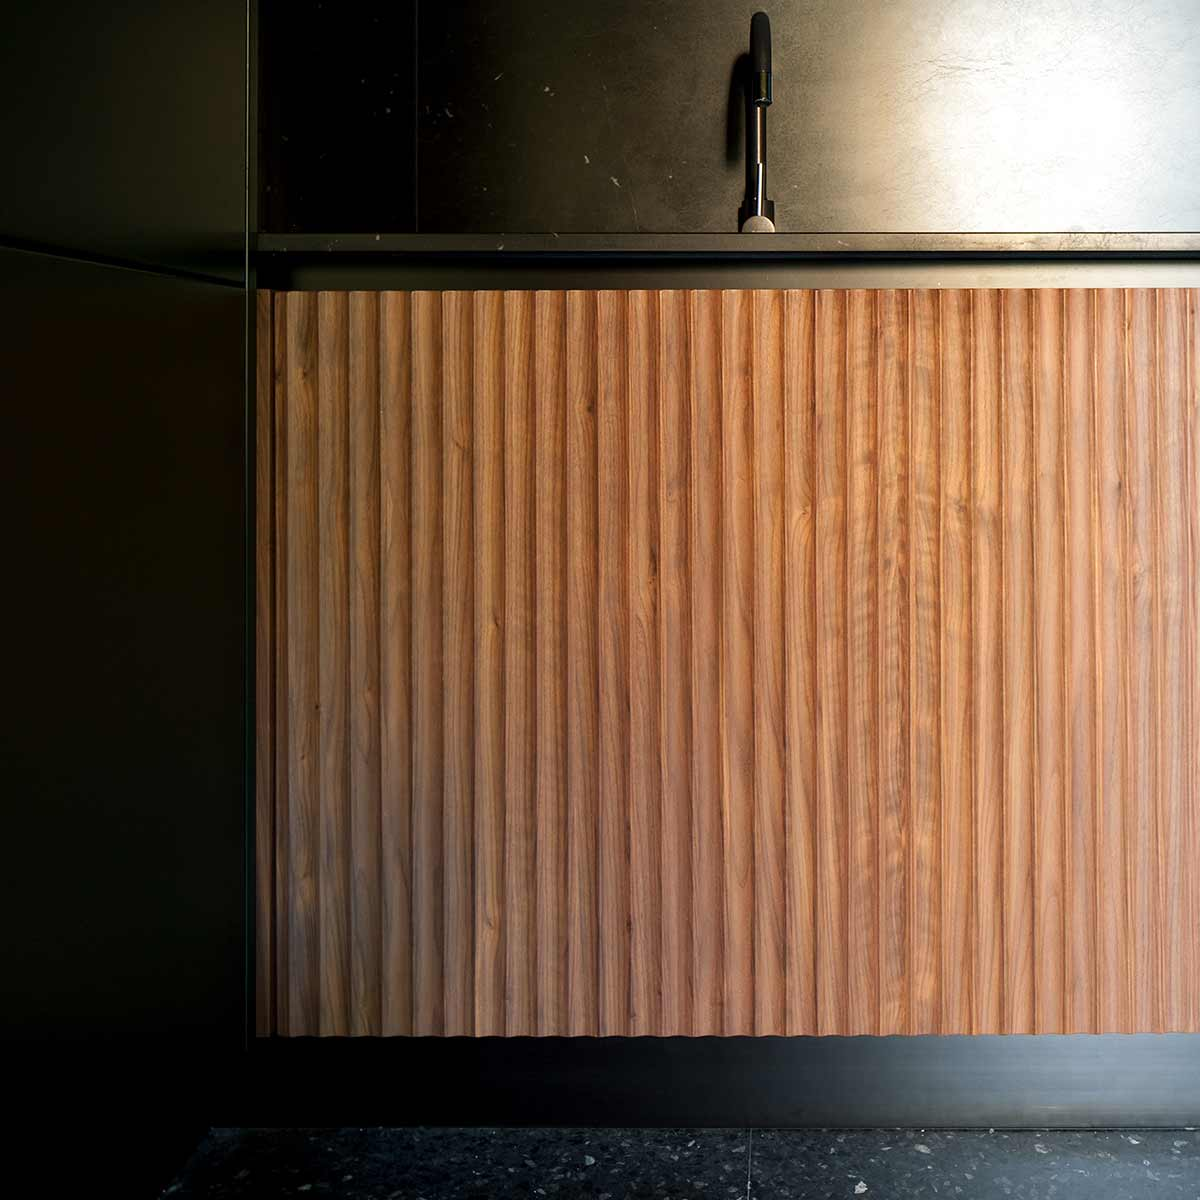 kickoffice casa n kitchen wood detail